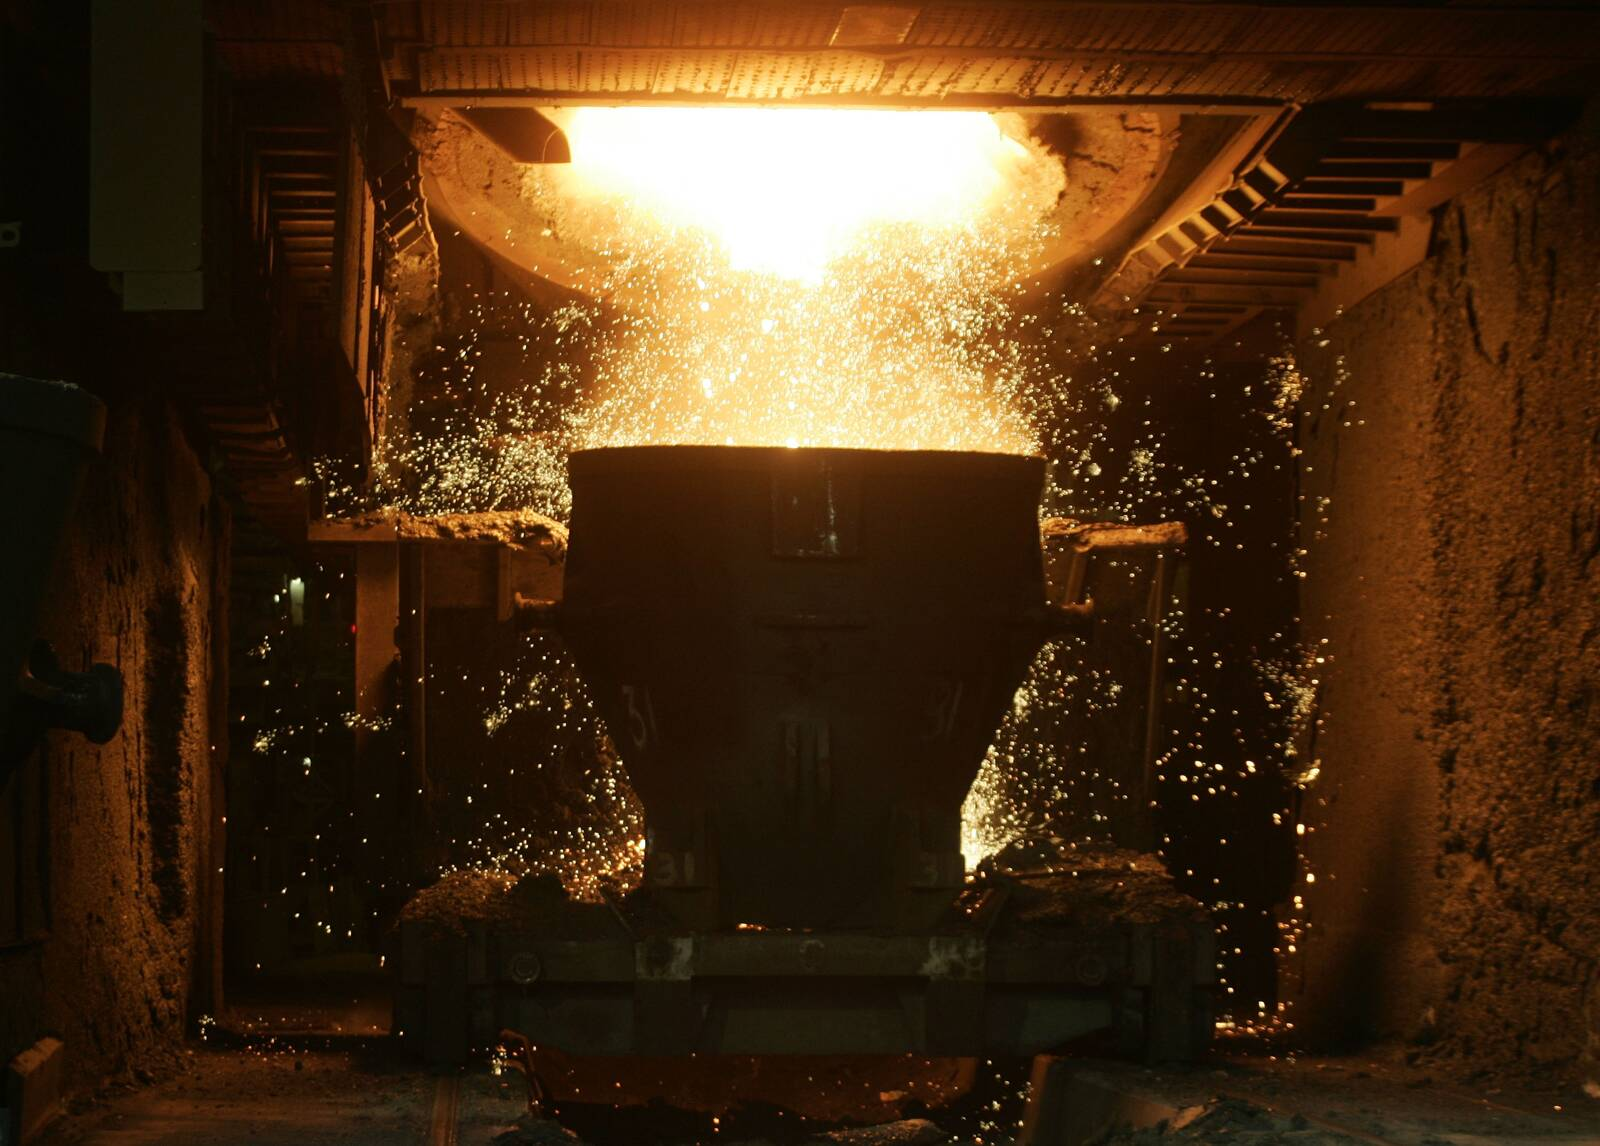 Steel is produced at ArcelorMittal Gent on Sept. 5, 2007 in Ghent, Belgium. Credit: Mark Renders/Getty Images